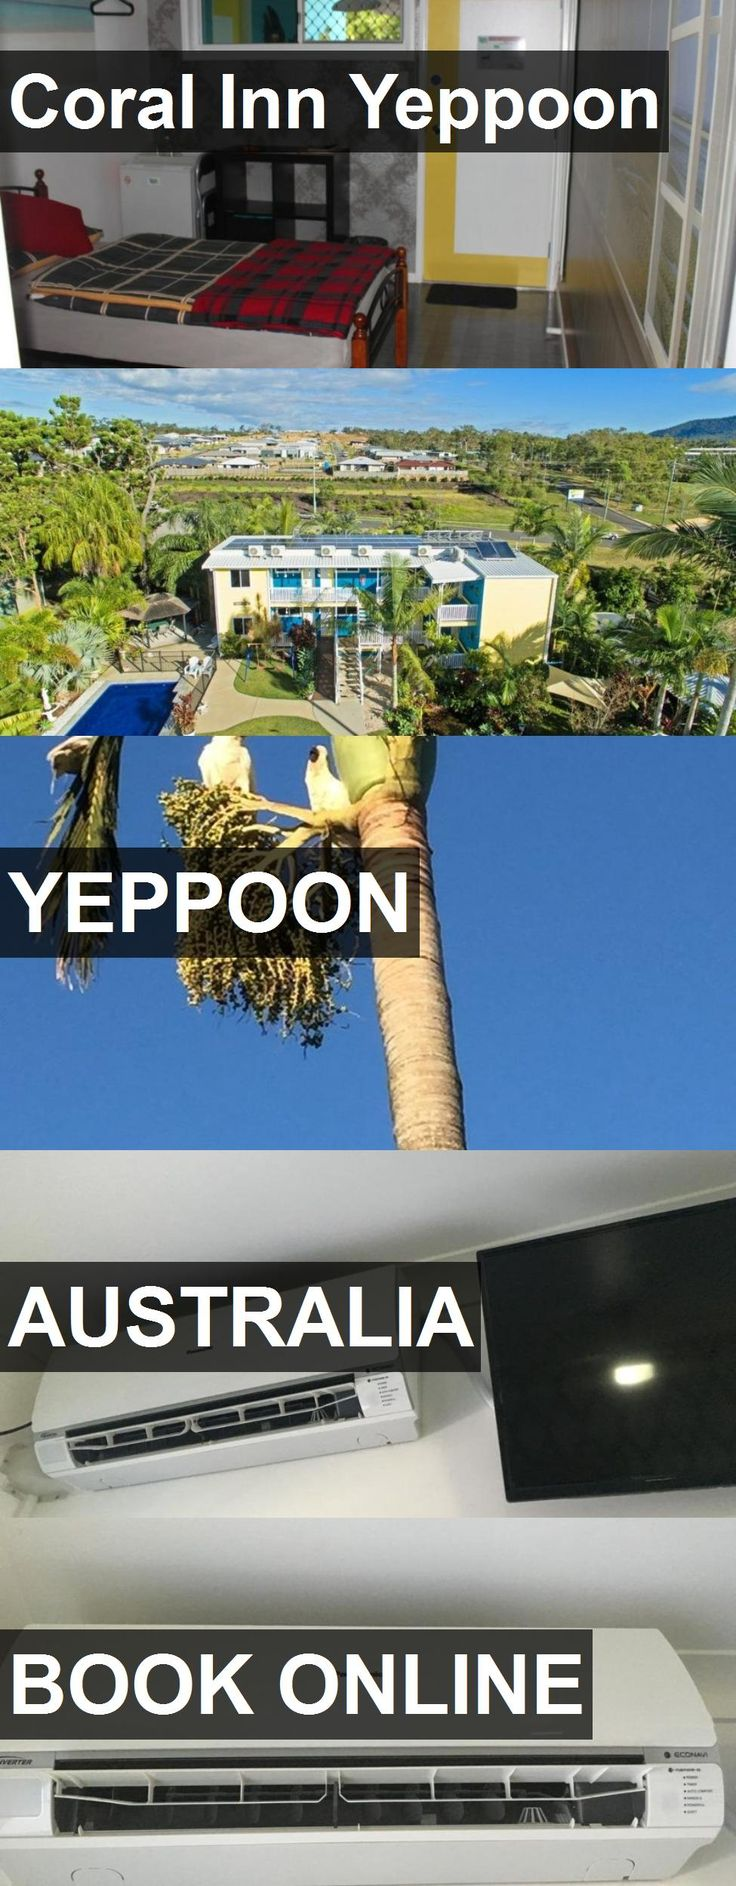 Hotel Coral Inn Yeppoon in Yeppoon, Australia. For more information, photos, reviews and best prices please follow the link. #Australia #Yeppoon #travel #vacation #hotel